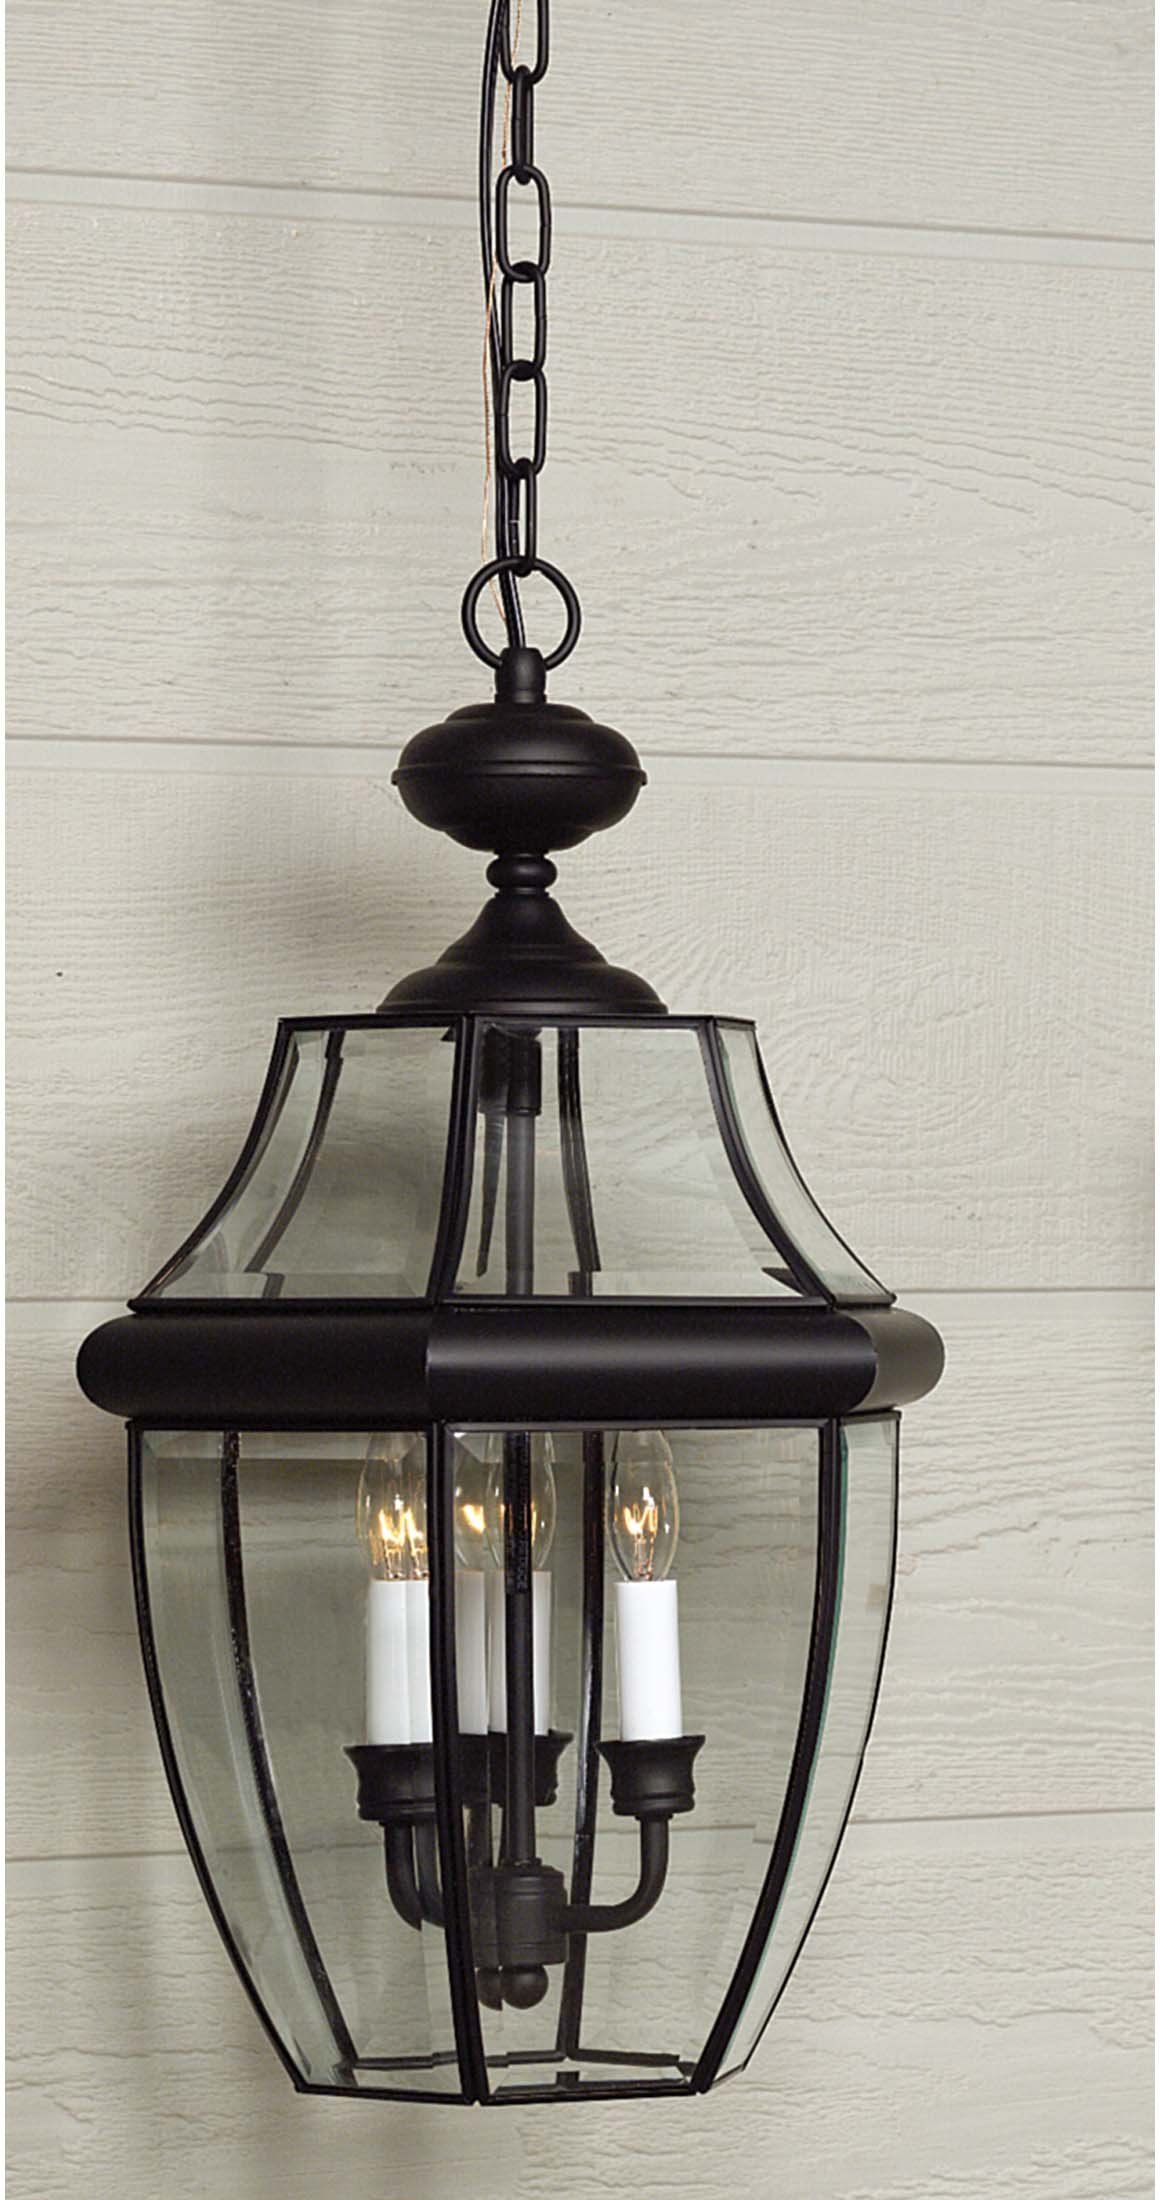 Quoizel NY1179K Newbury 3 Light Chain Hung Outdoor Wall Lantern with Mystic Black Finish by Quoizel